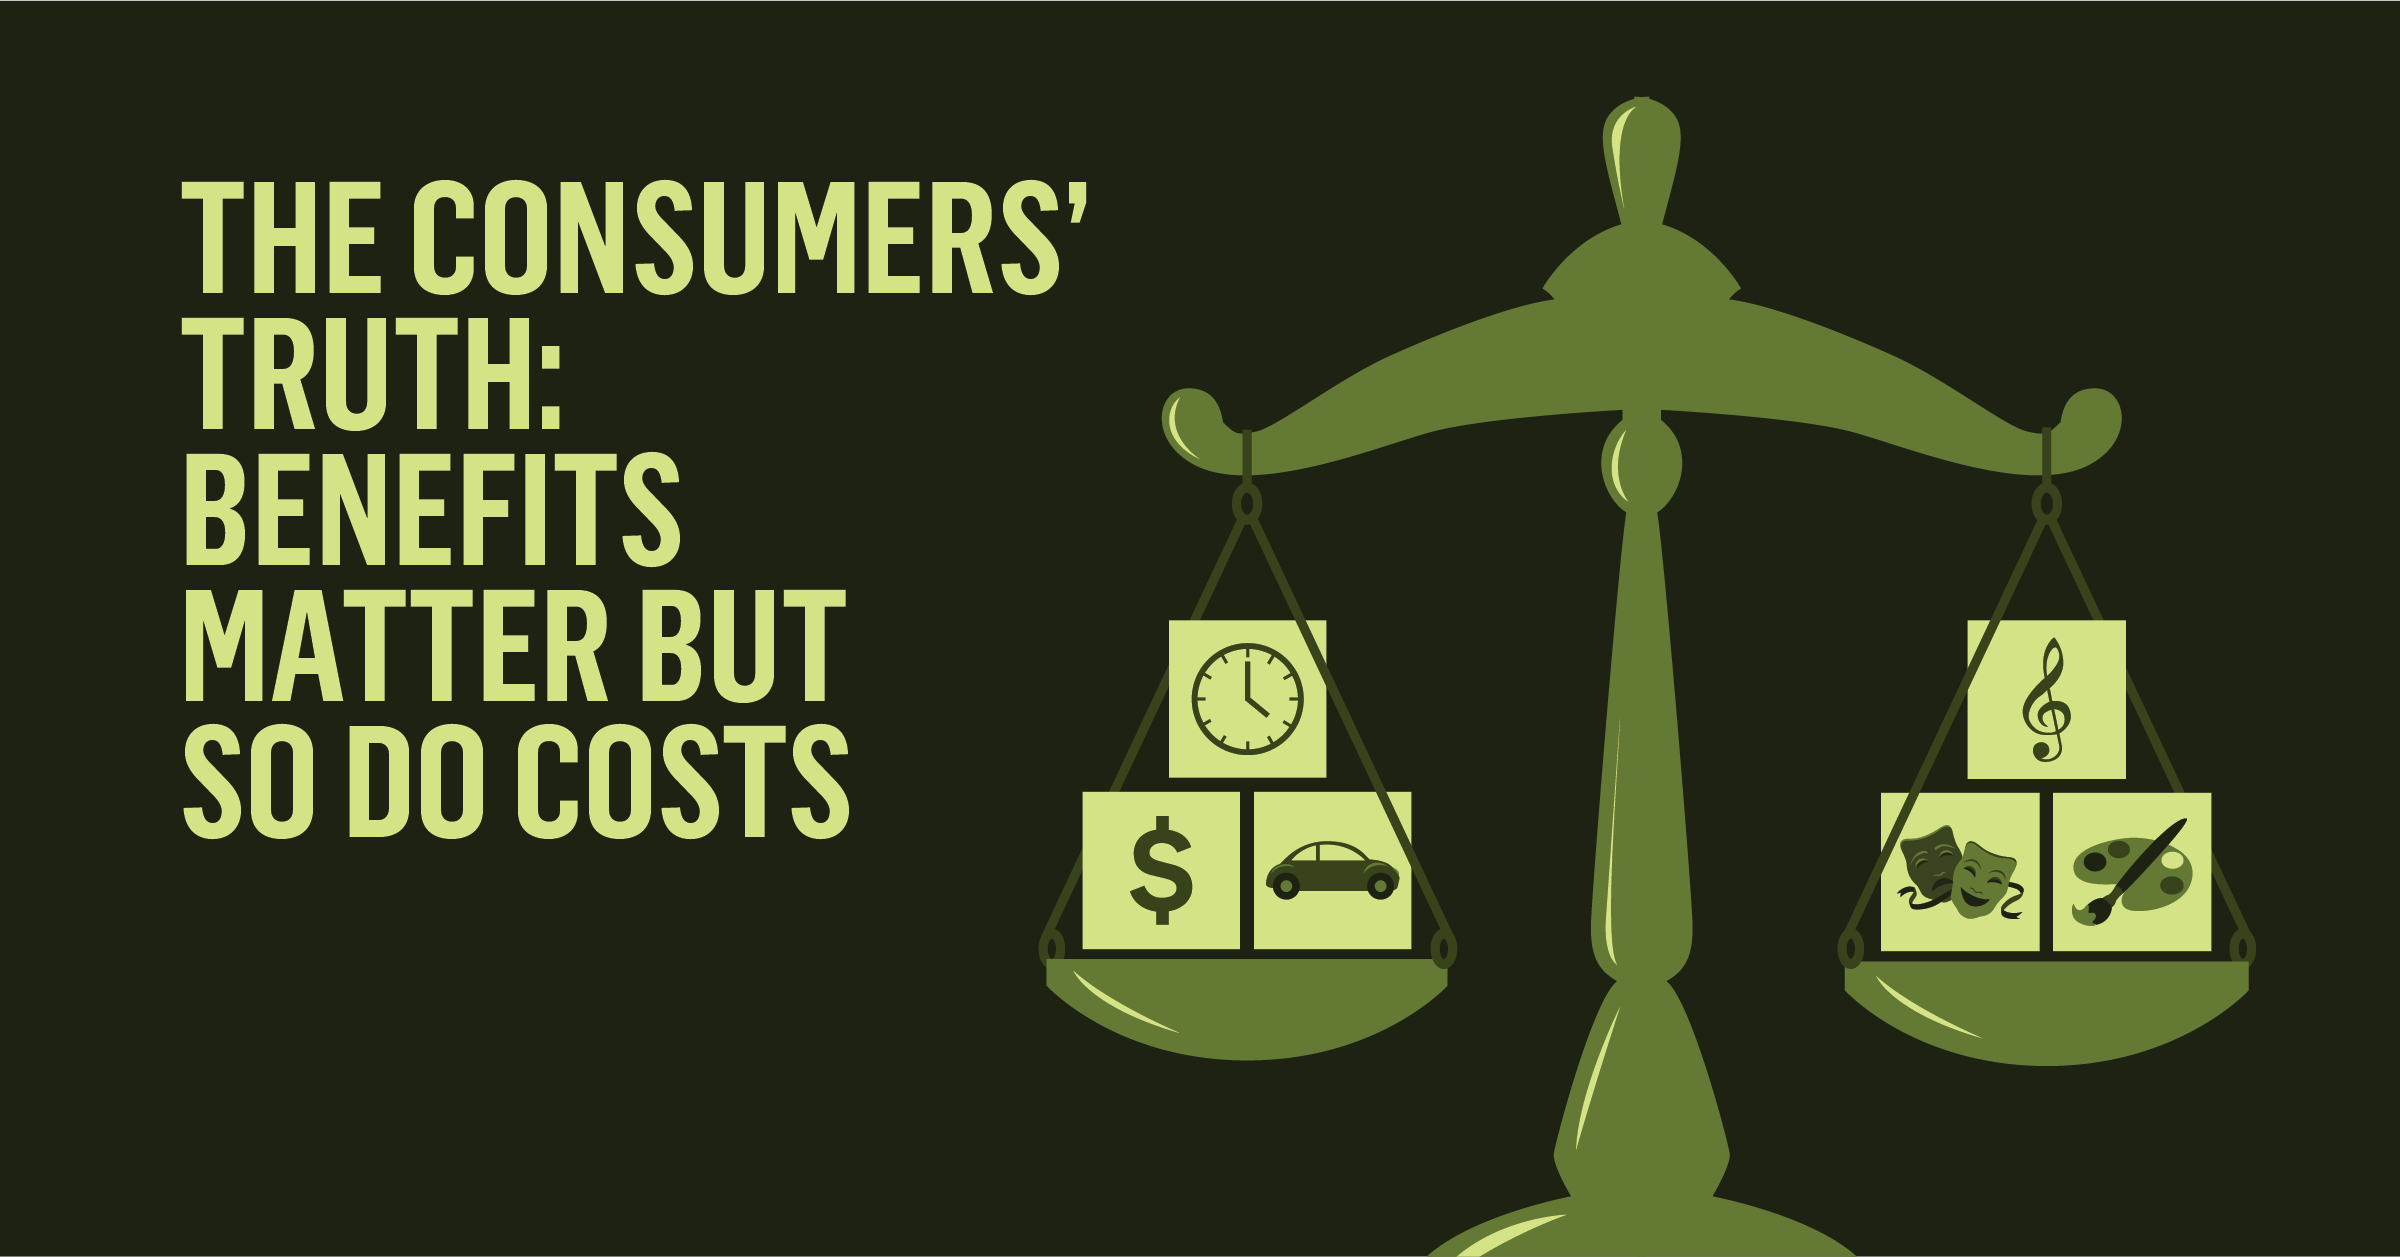 The Consumers' Truth: Benefits Matter But So Do Costs